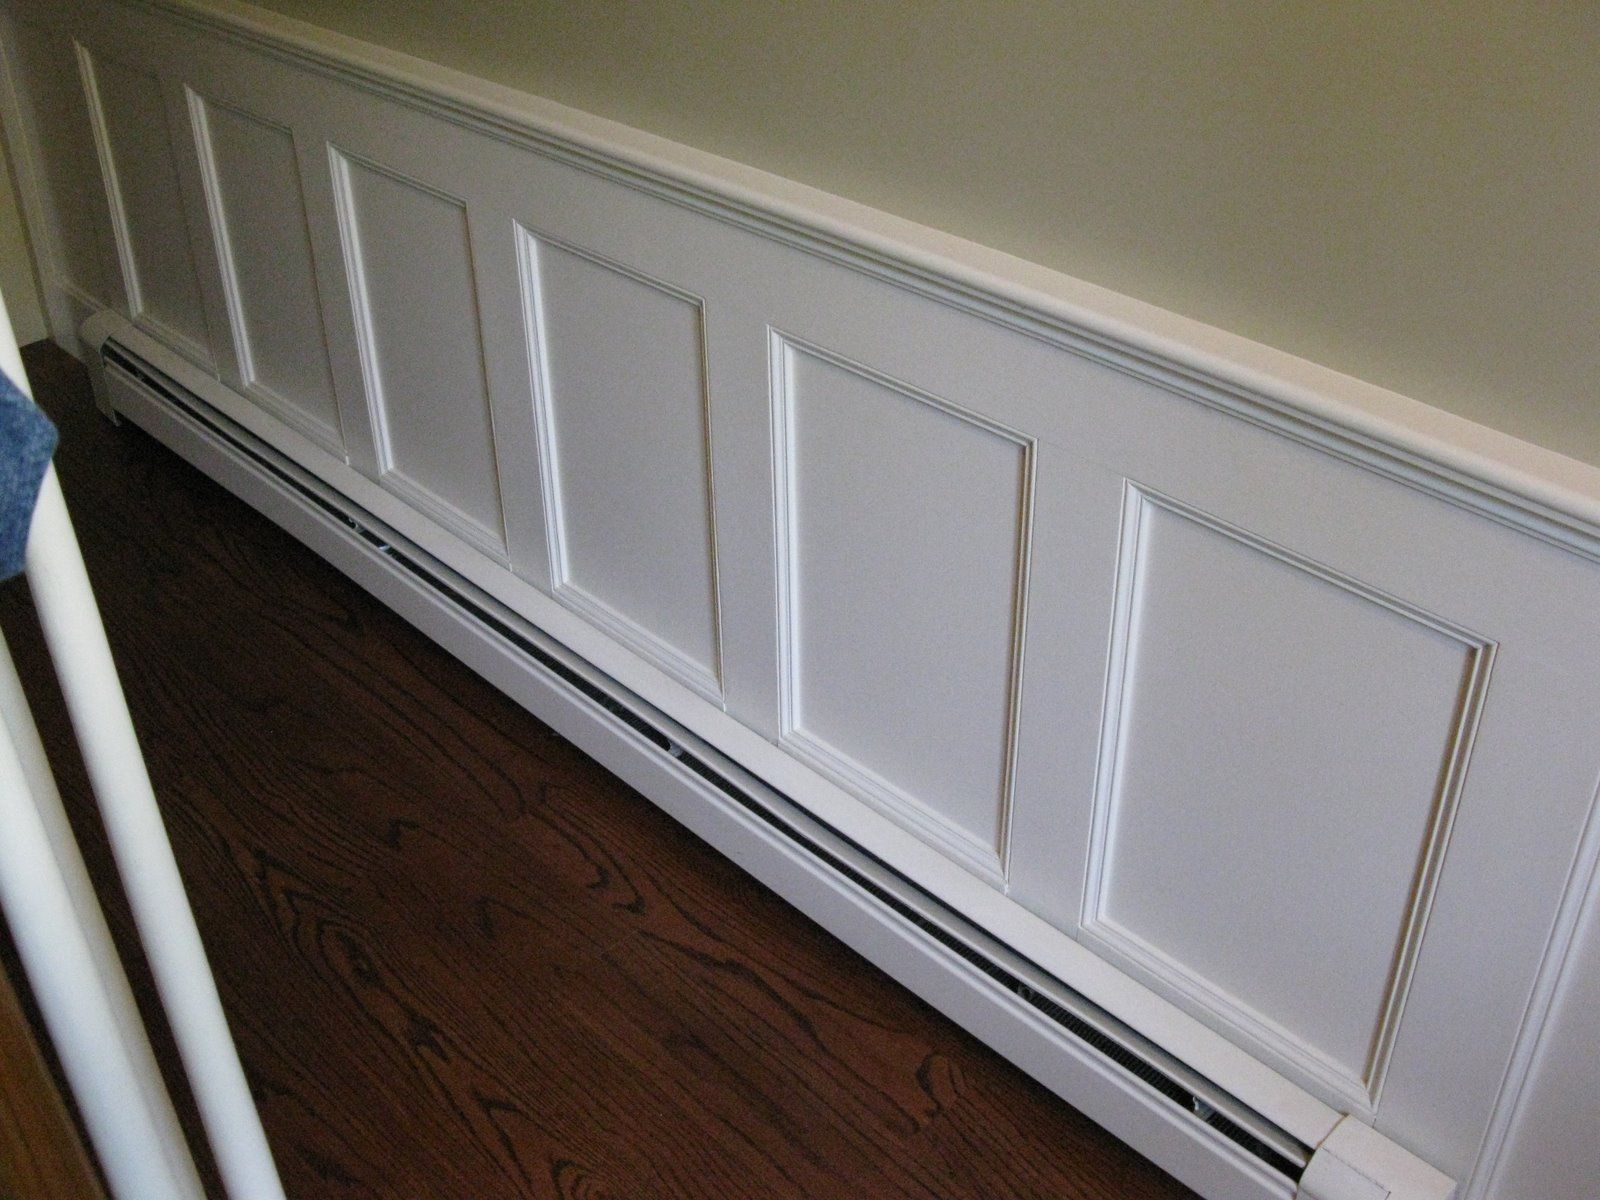 Wainscoting With Baseboard Heater House Pinterest